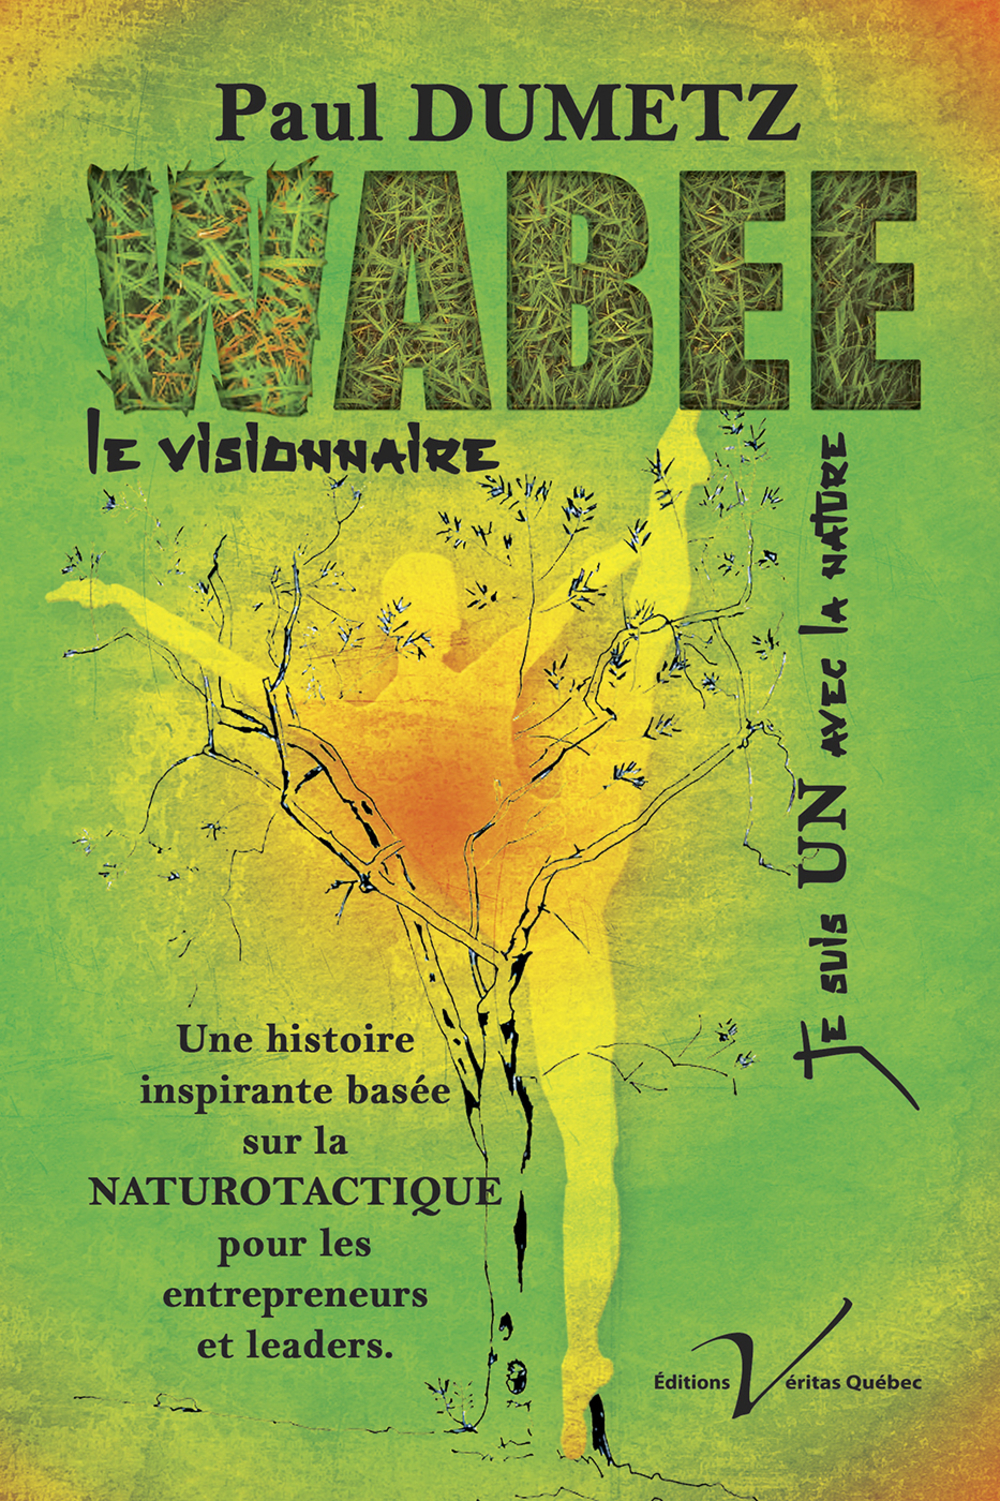 Wabee, tome 1 : Le visionnaire